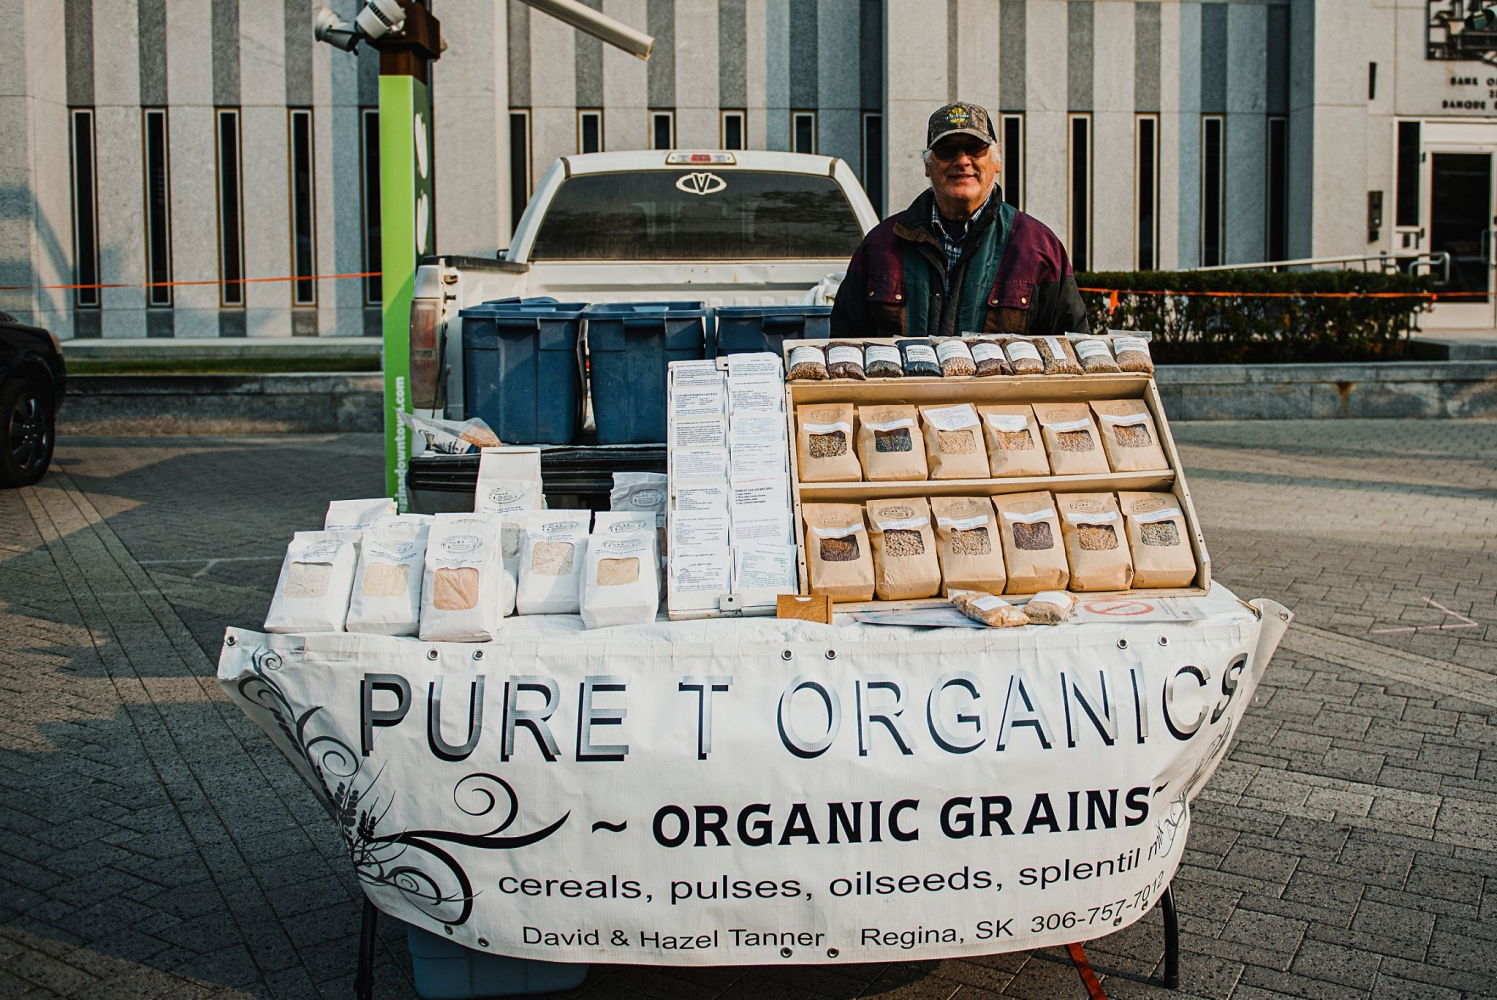 Vendor Spotlight: Pure T Organics